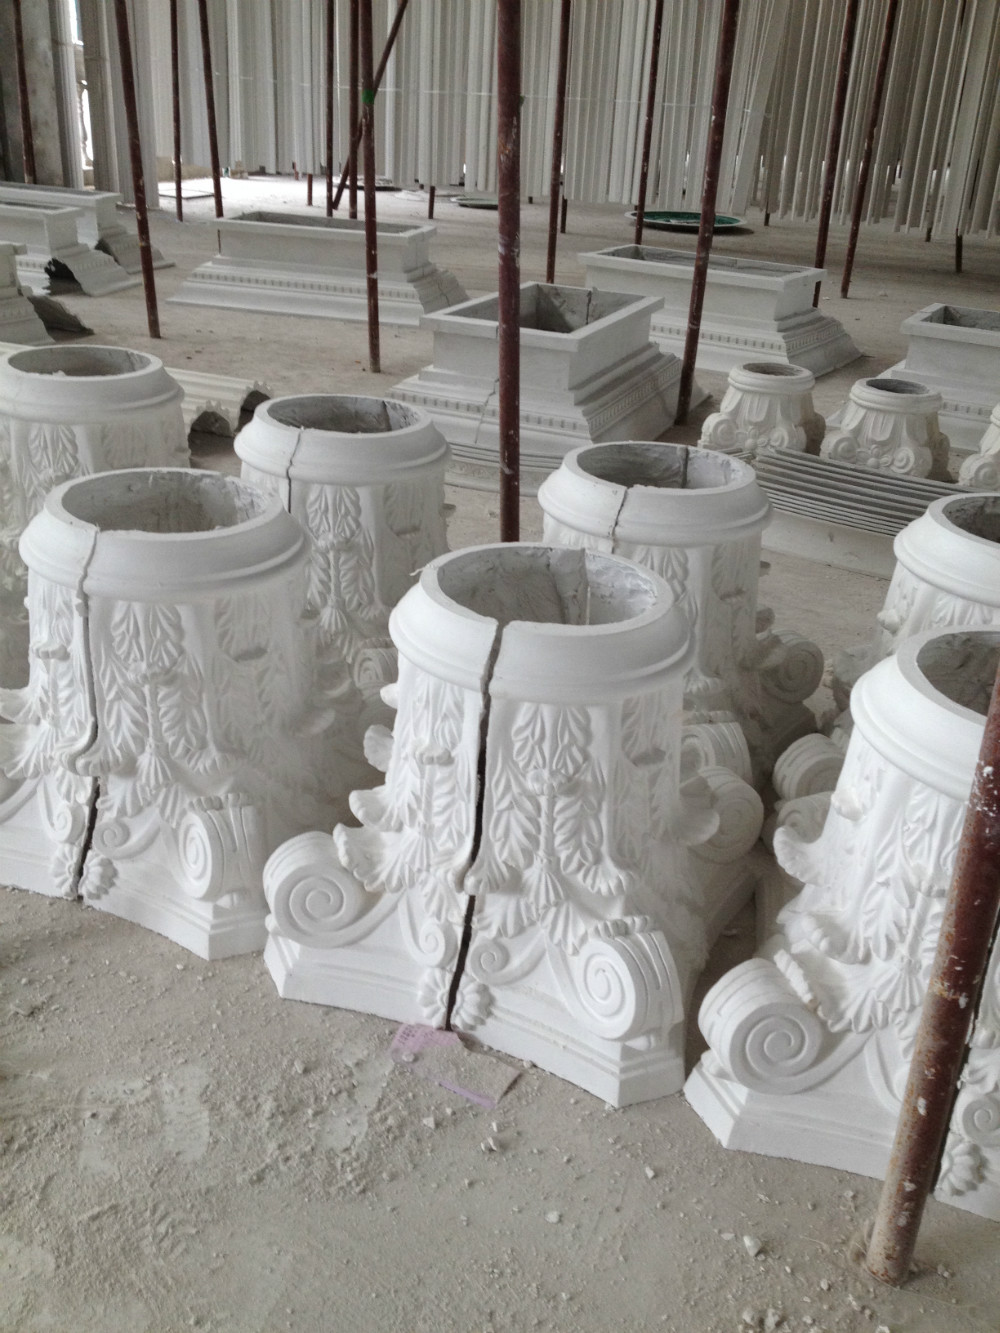 Glass Reinforced Gypsum Product : Hotel inside decoratin material glassfiber reinforced